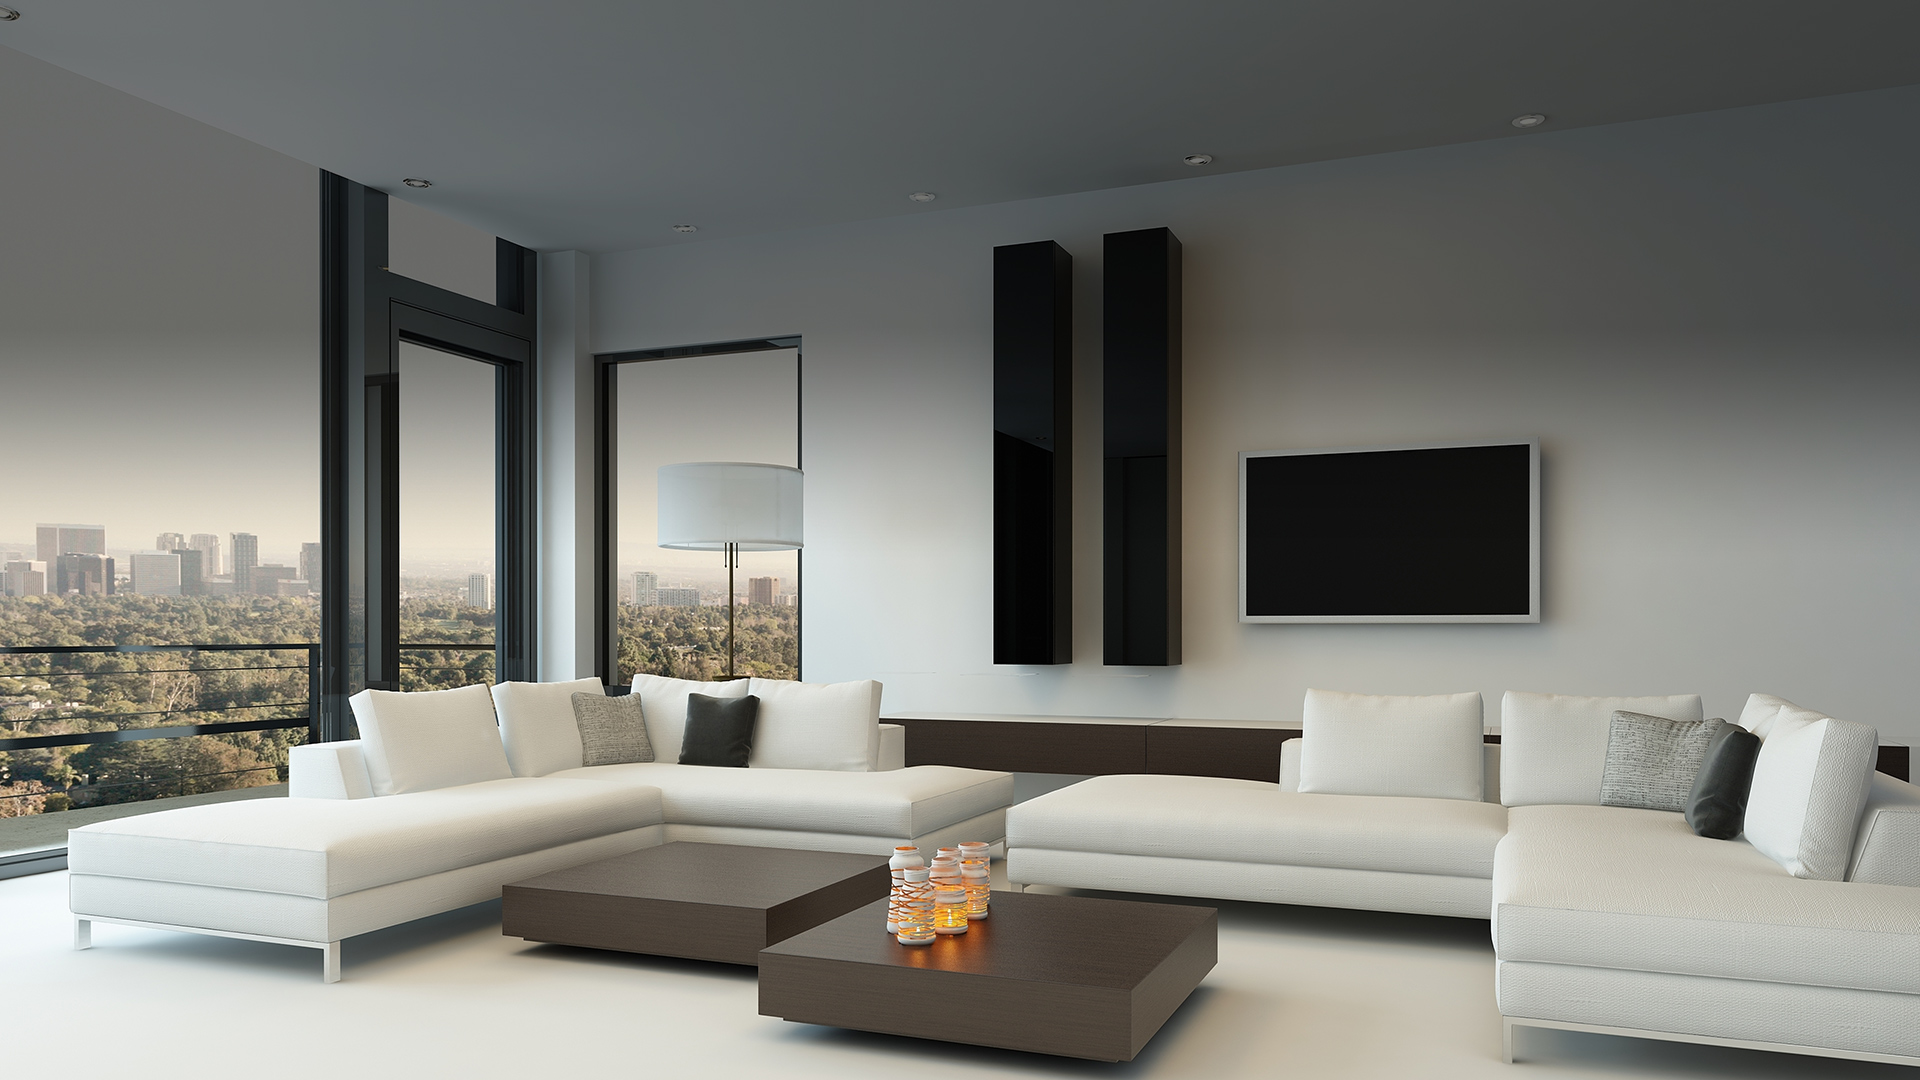 Luxe affordable interior design services in torrance ca for Interior design services